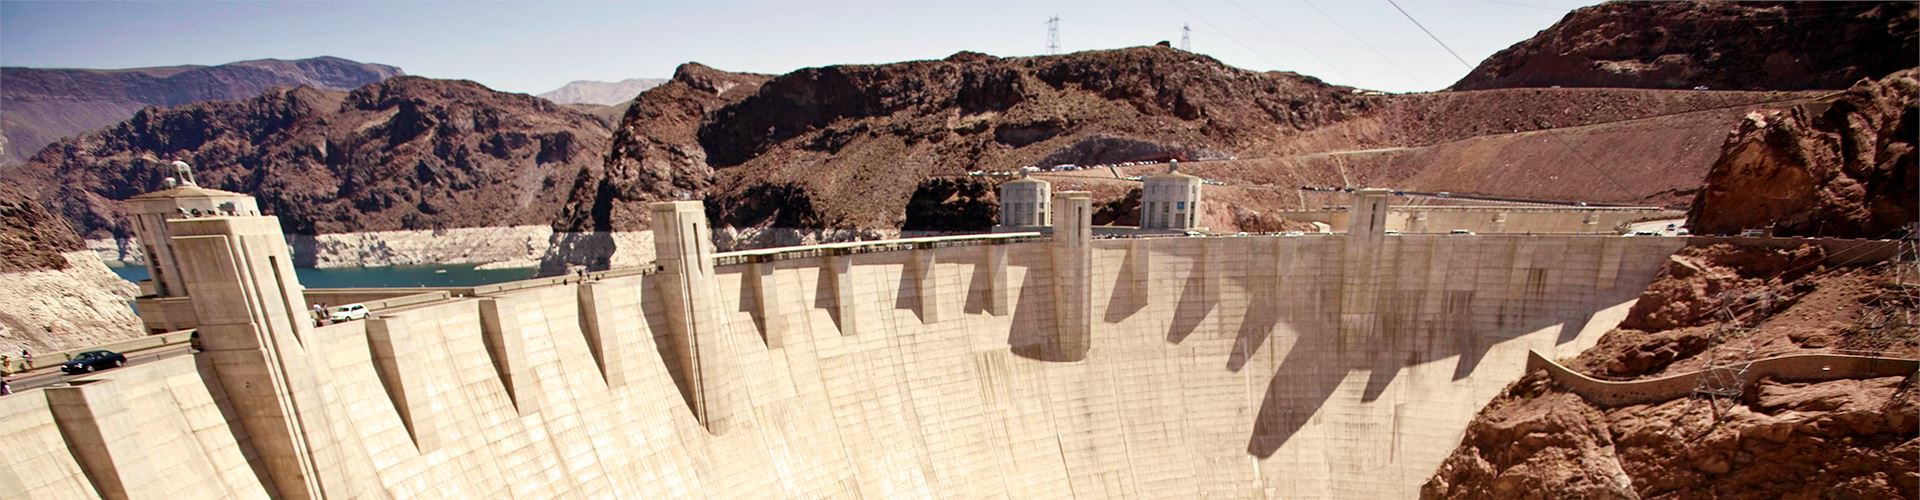 Concrete face of the Hoover Dam in the Nevada hills.